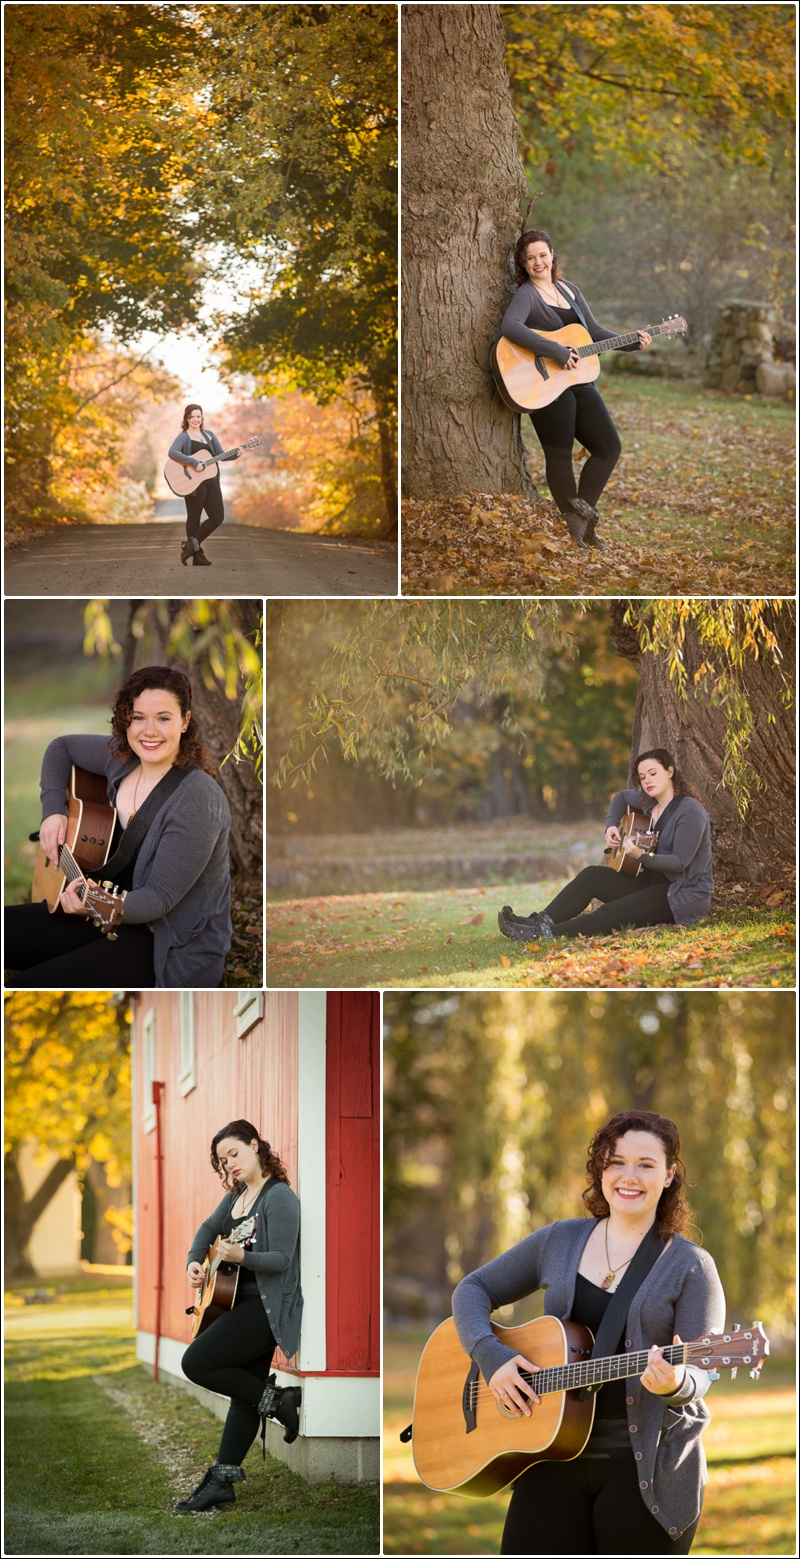 Oakland Township photographer with singer songwriter